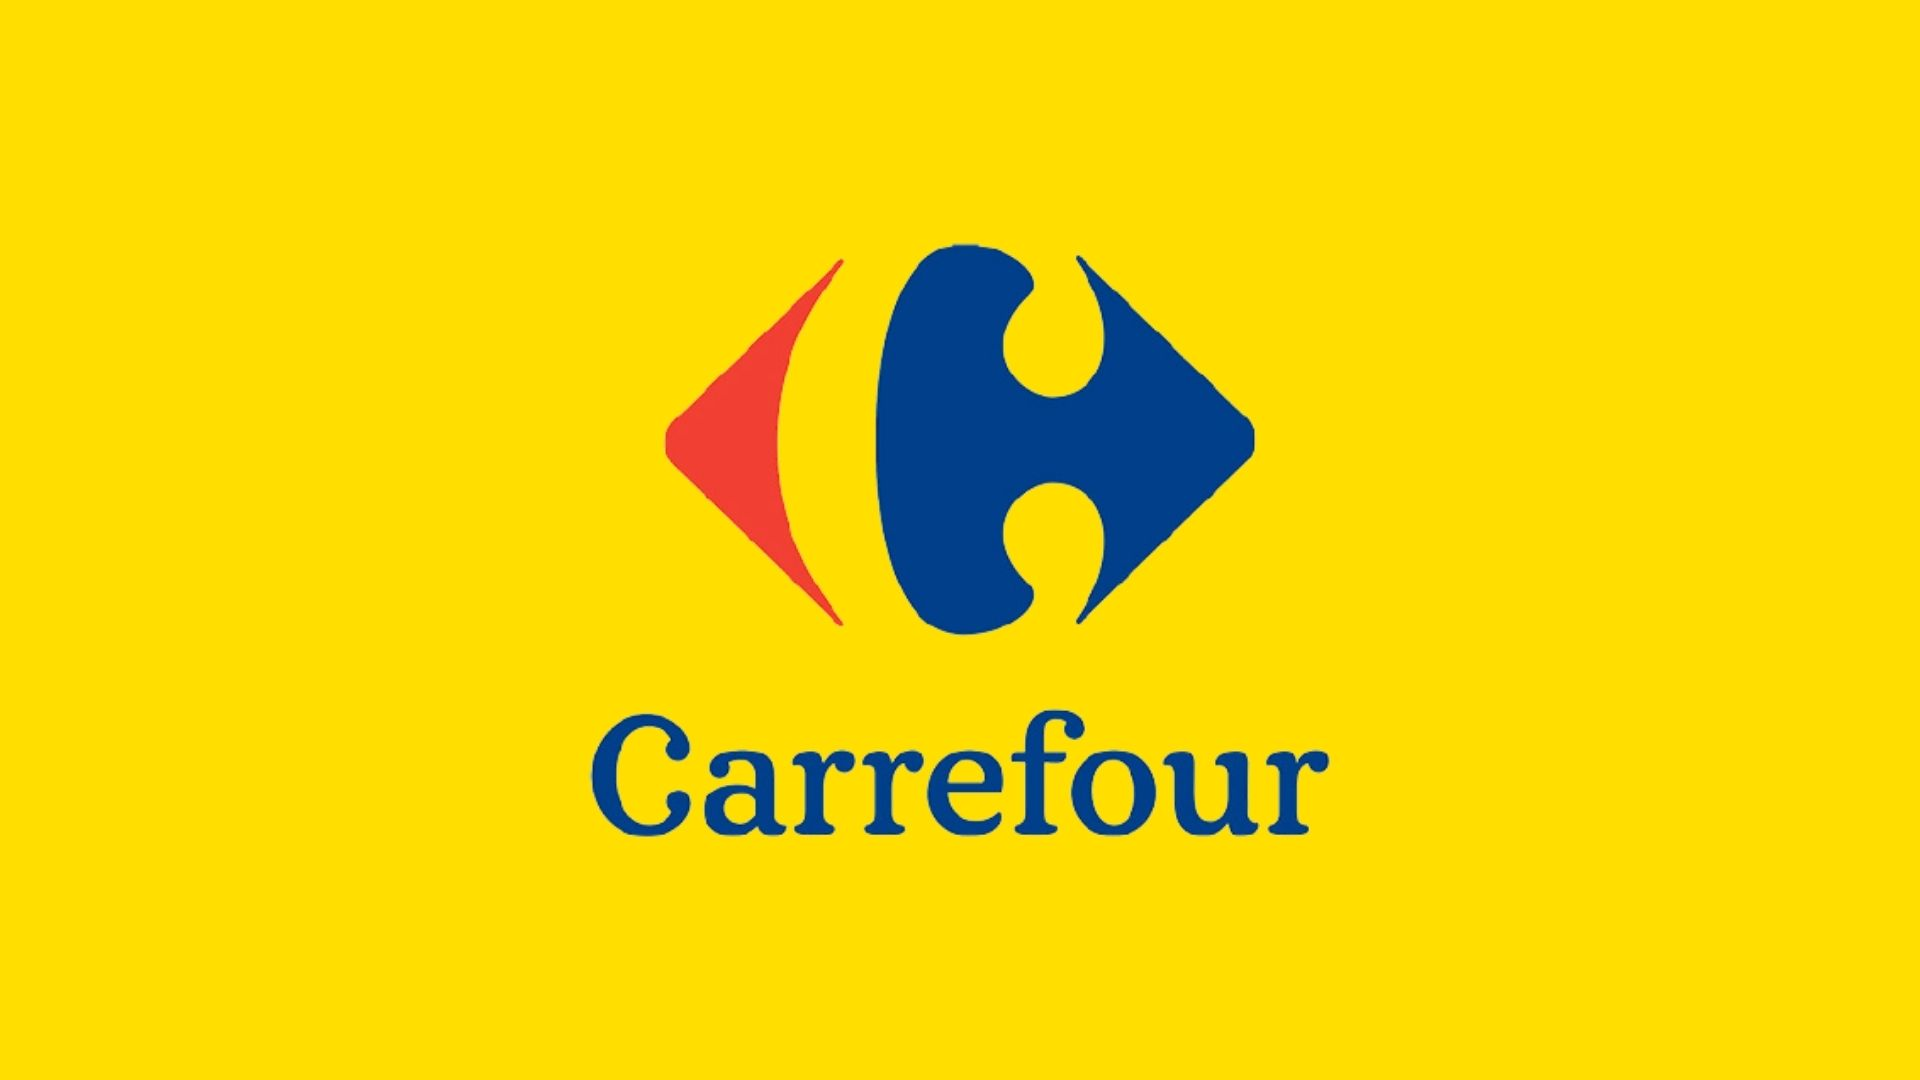 Carrefour Will Be Using Blockchain Technology in The Food Industries - TCR